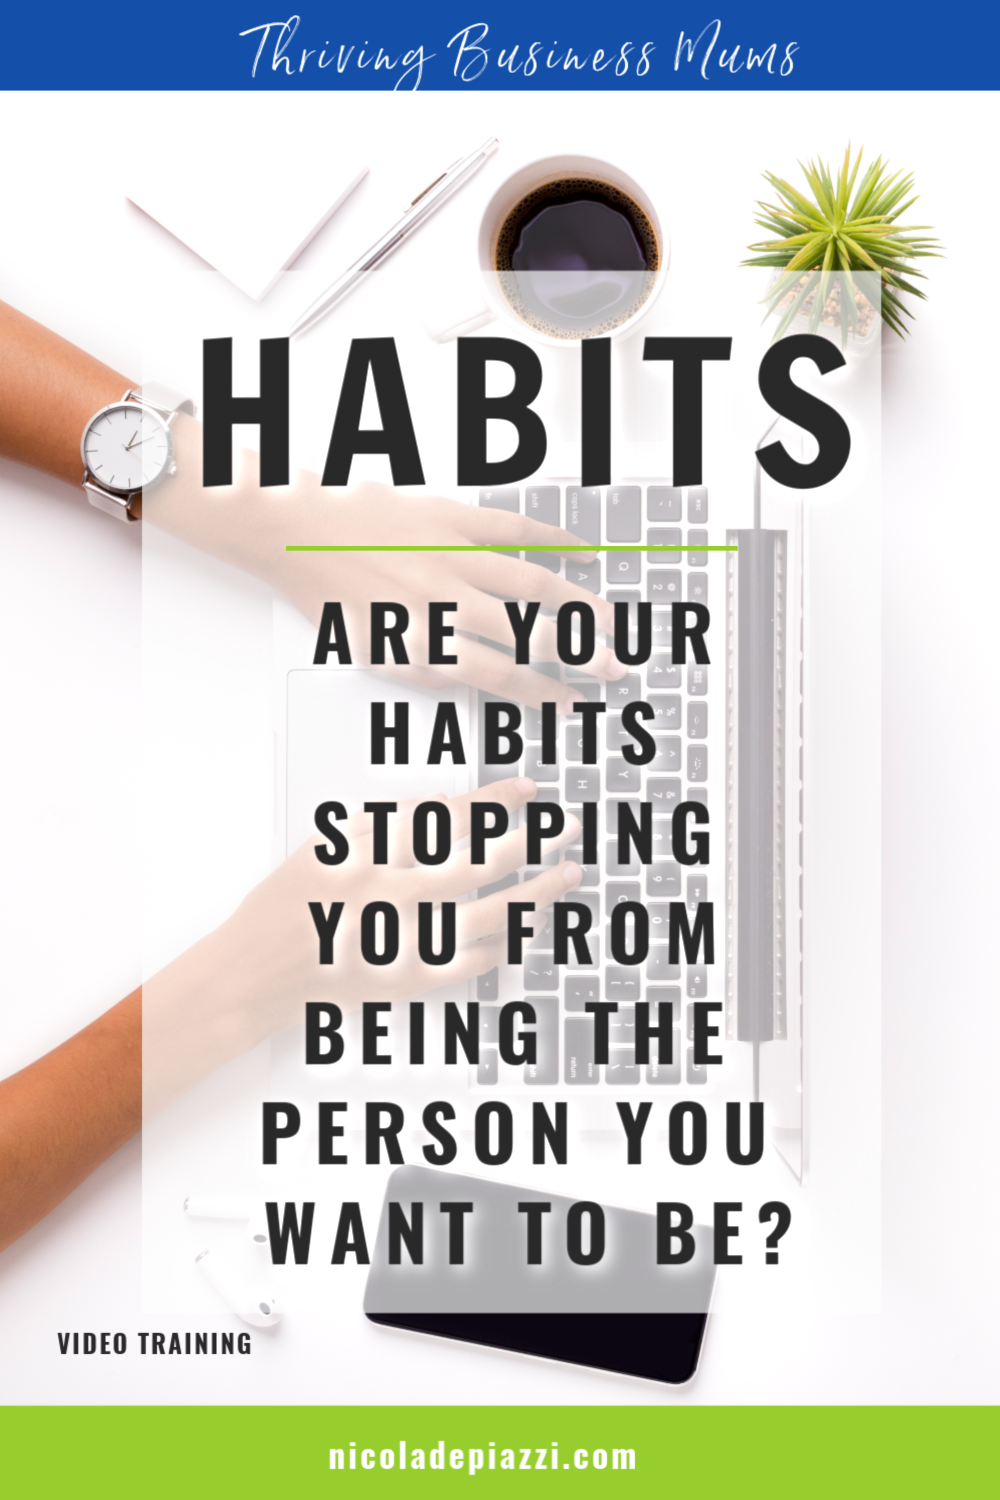 Habits hold you back